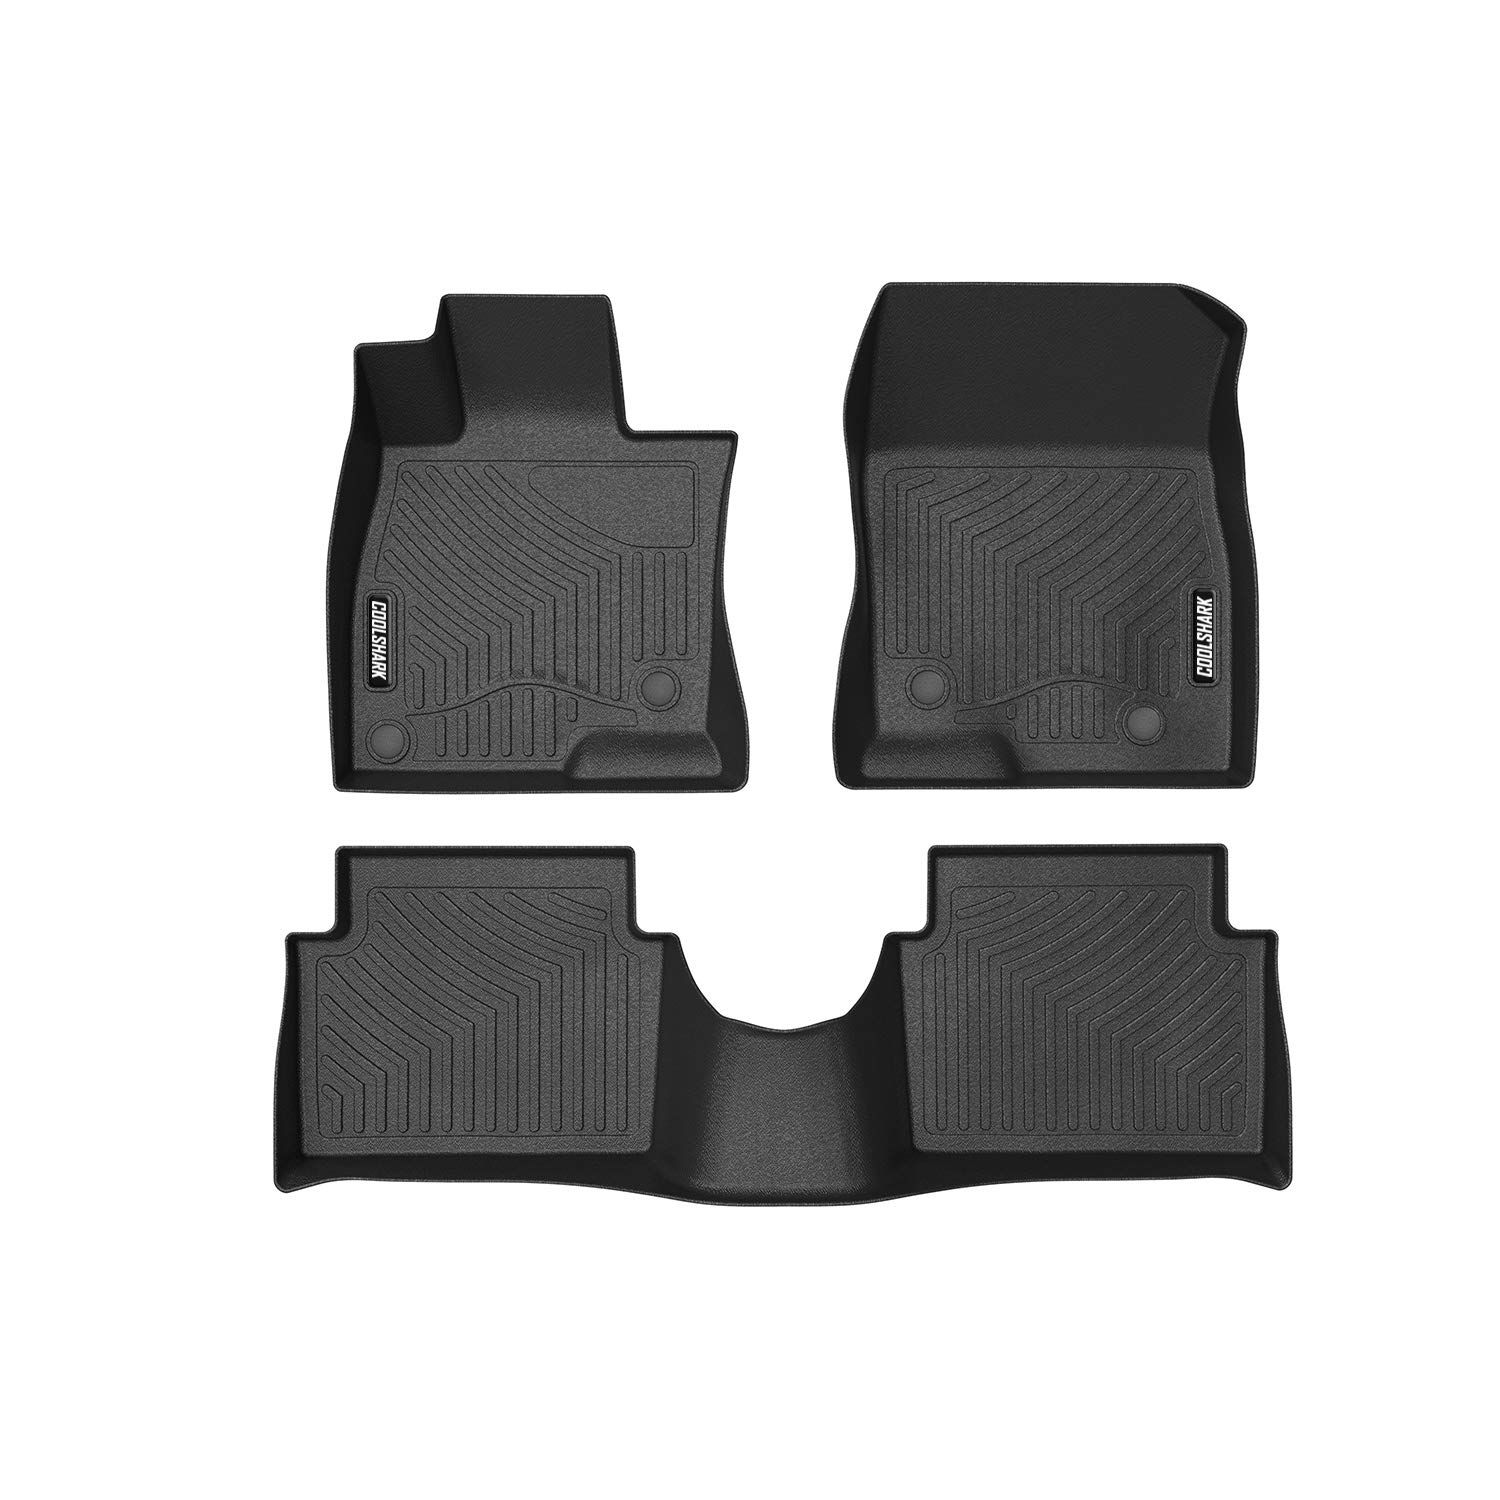 Coolshark Mazda 3 Floor Mats Waterproof Floor Liners Custom Fit